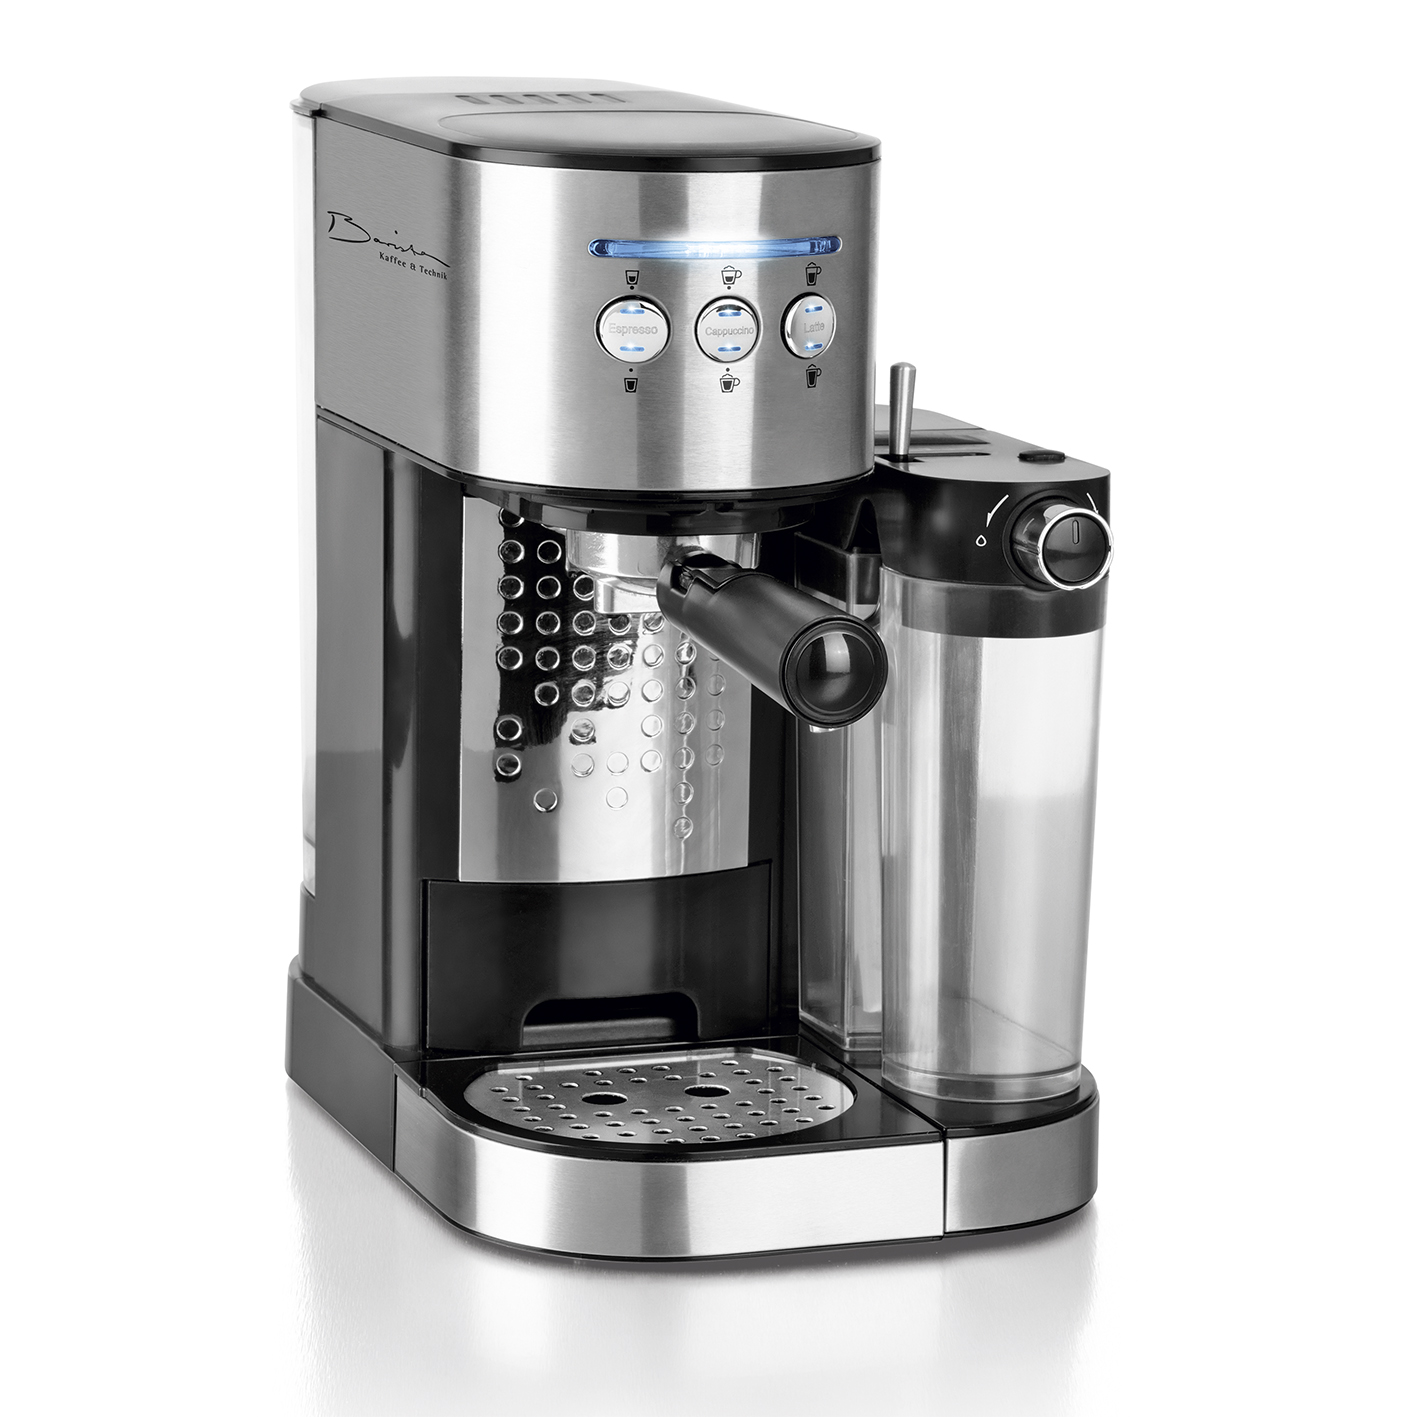 barista espresso maschine espressomaschine b ware ebay. Black Bedroom Furniture Sets. Home Design Ideas